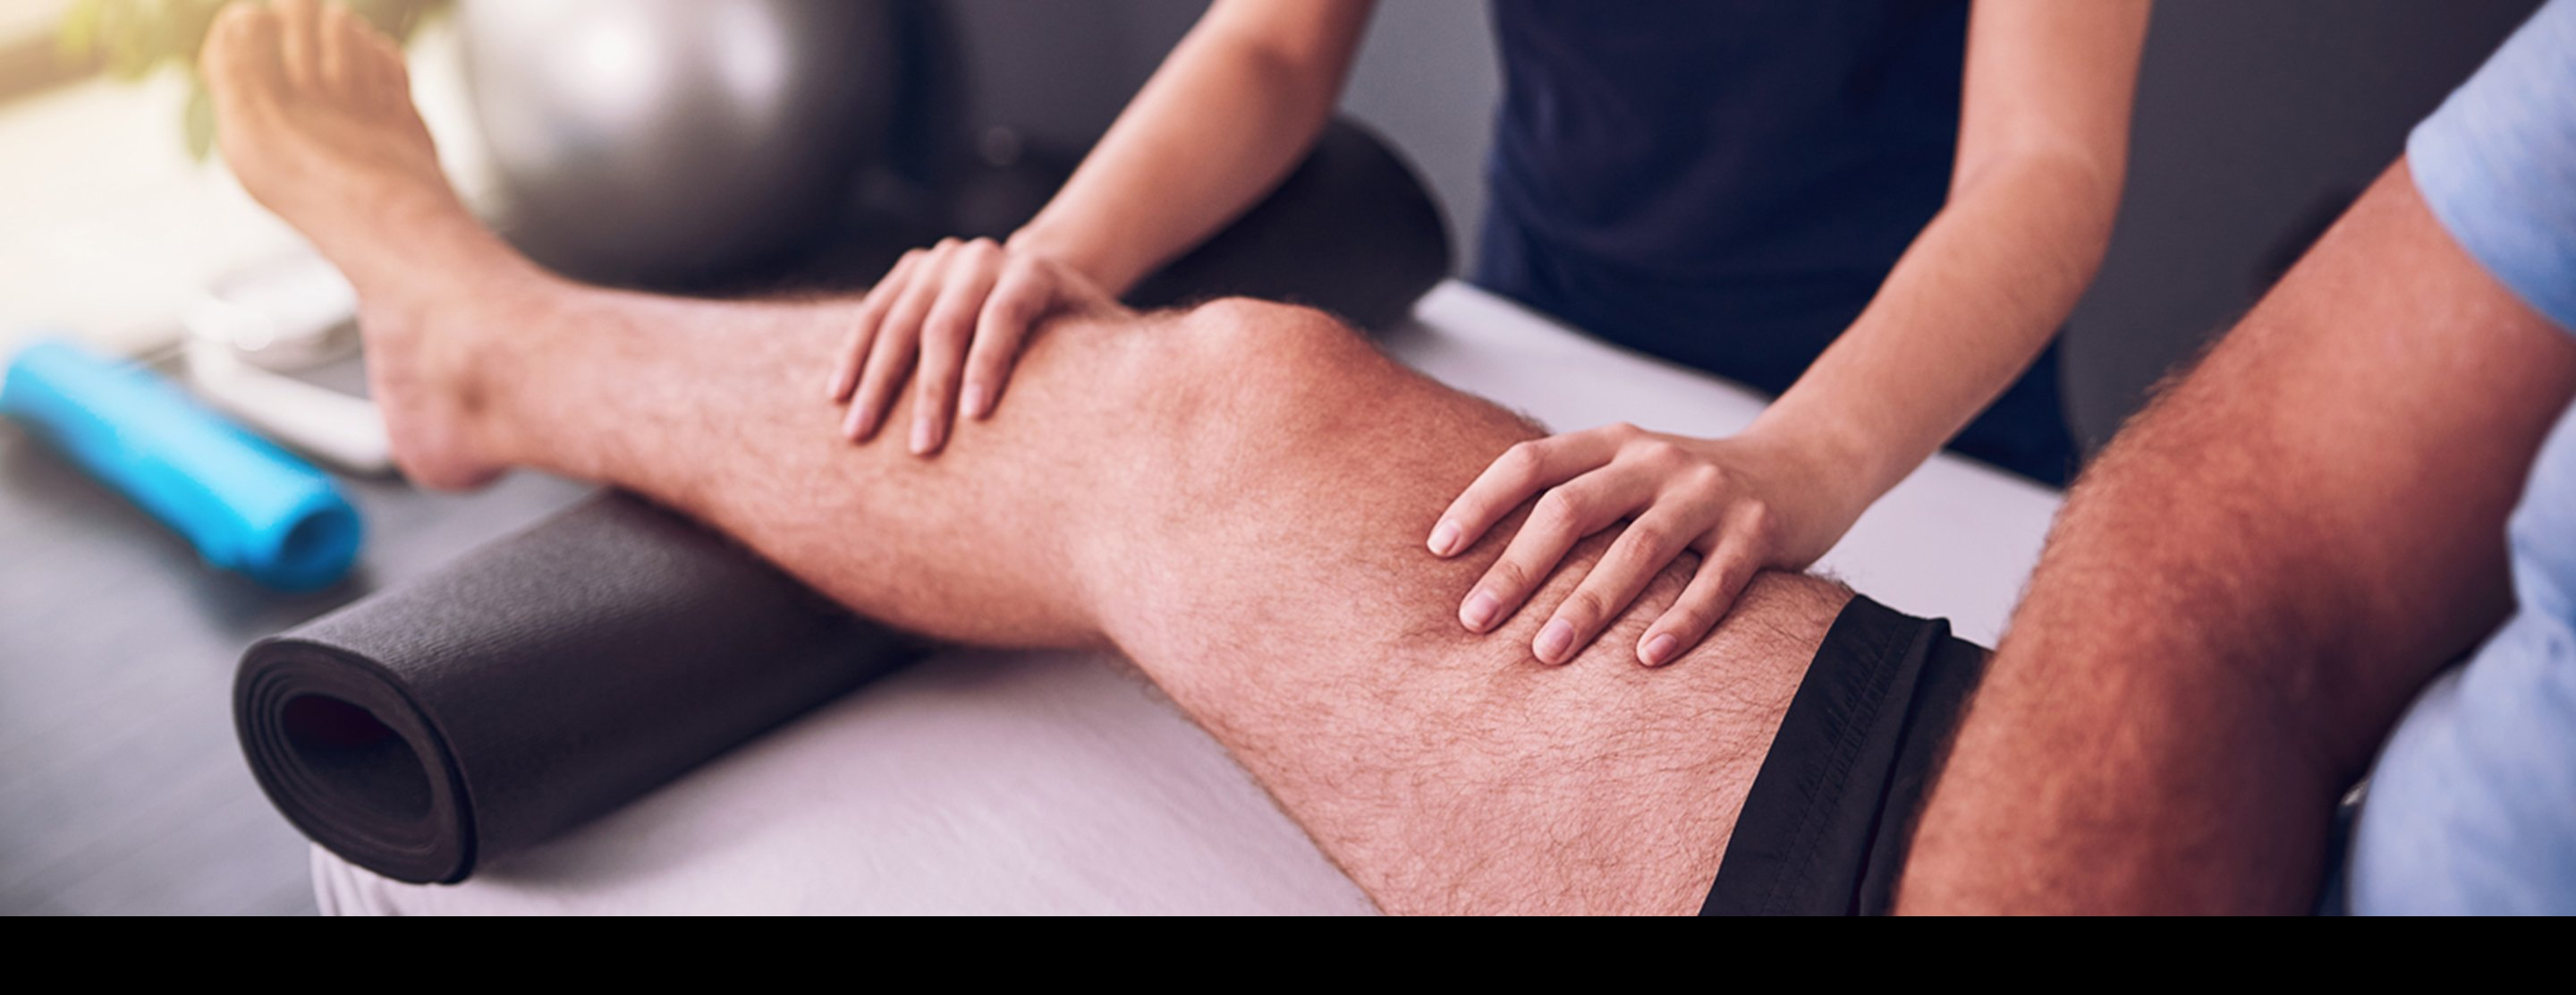 After Surgical Kneecap Alignment | Patient Education | UCSF Health